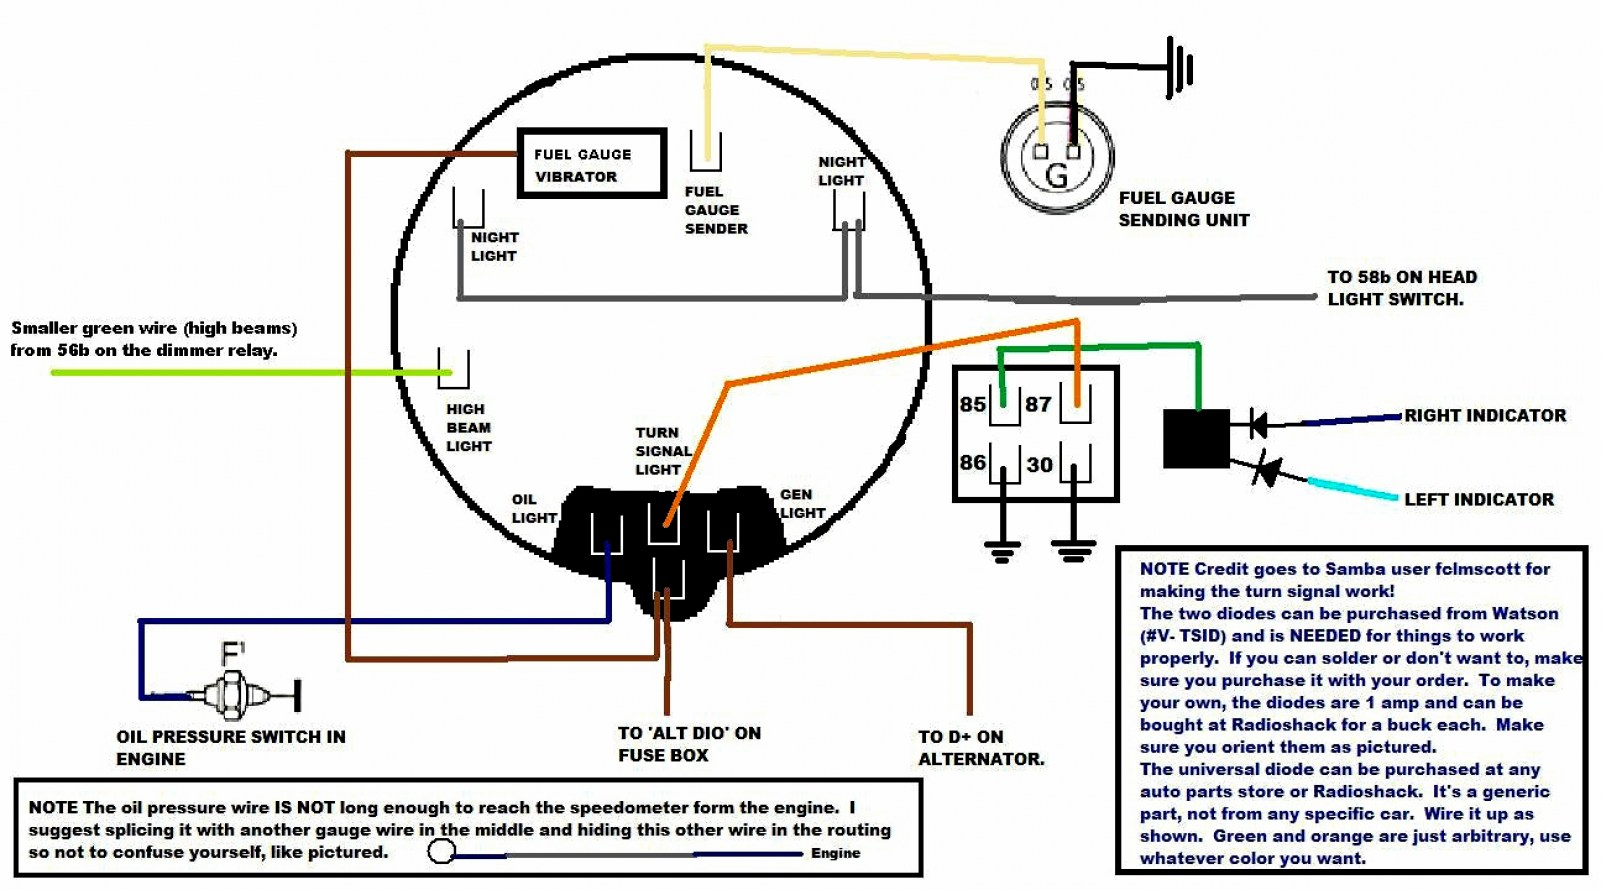 vdo gauge wiring diagram schematic xk 2871  fuel gauge wiring diagram vdo wiring diagram sea pro  xk 2871  fuel gauge wiring diagram vdo